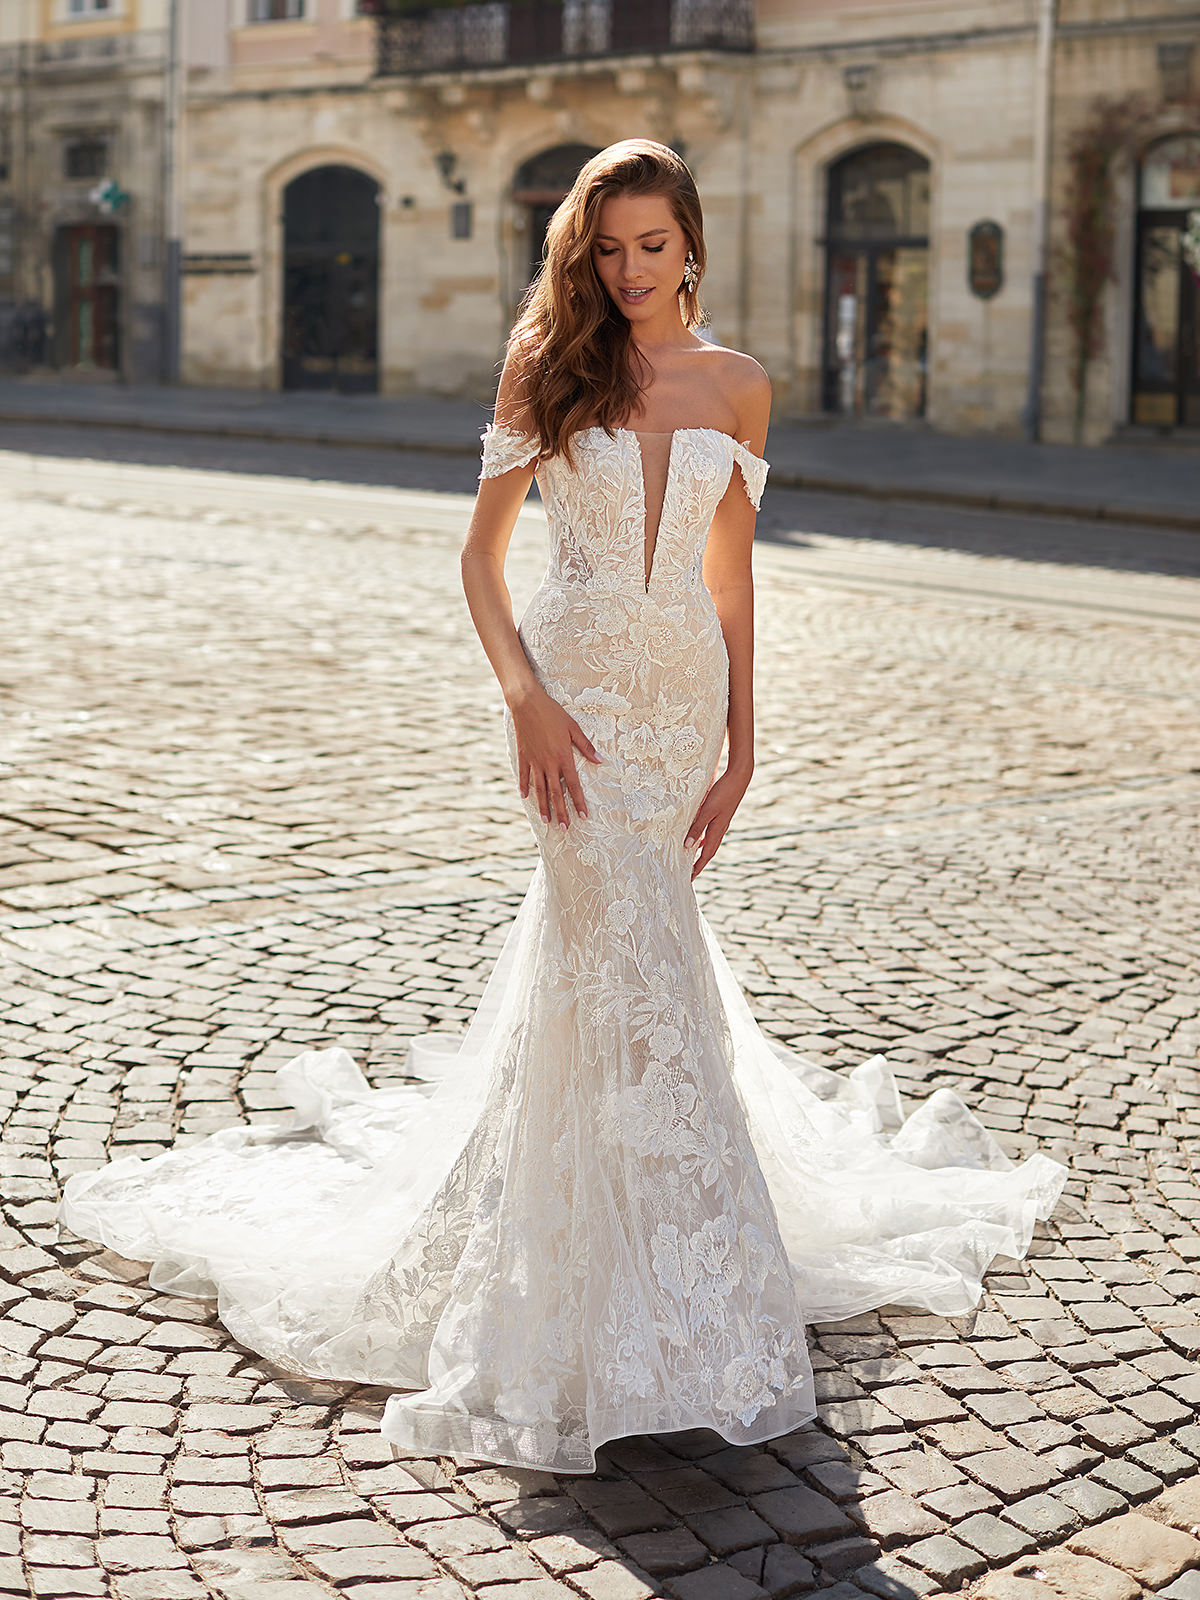 Designer Wedding Dresses by Moonlight Couture 2022 Bridal Collection - H1481_A